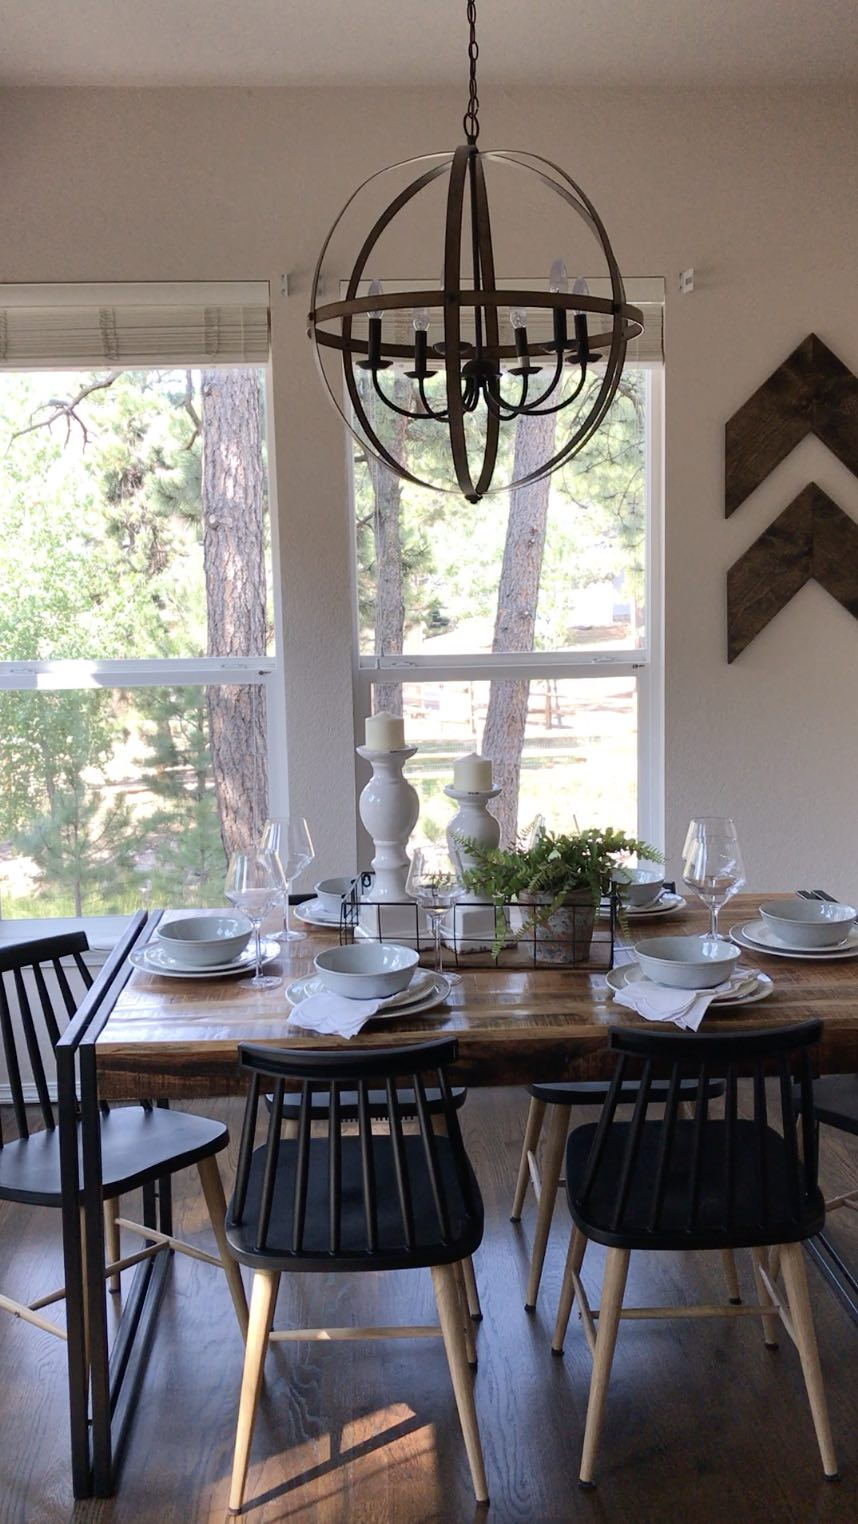 I LOVE this modern farmhouse style light fixture! Made my kitchen look so good